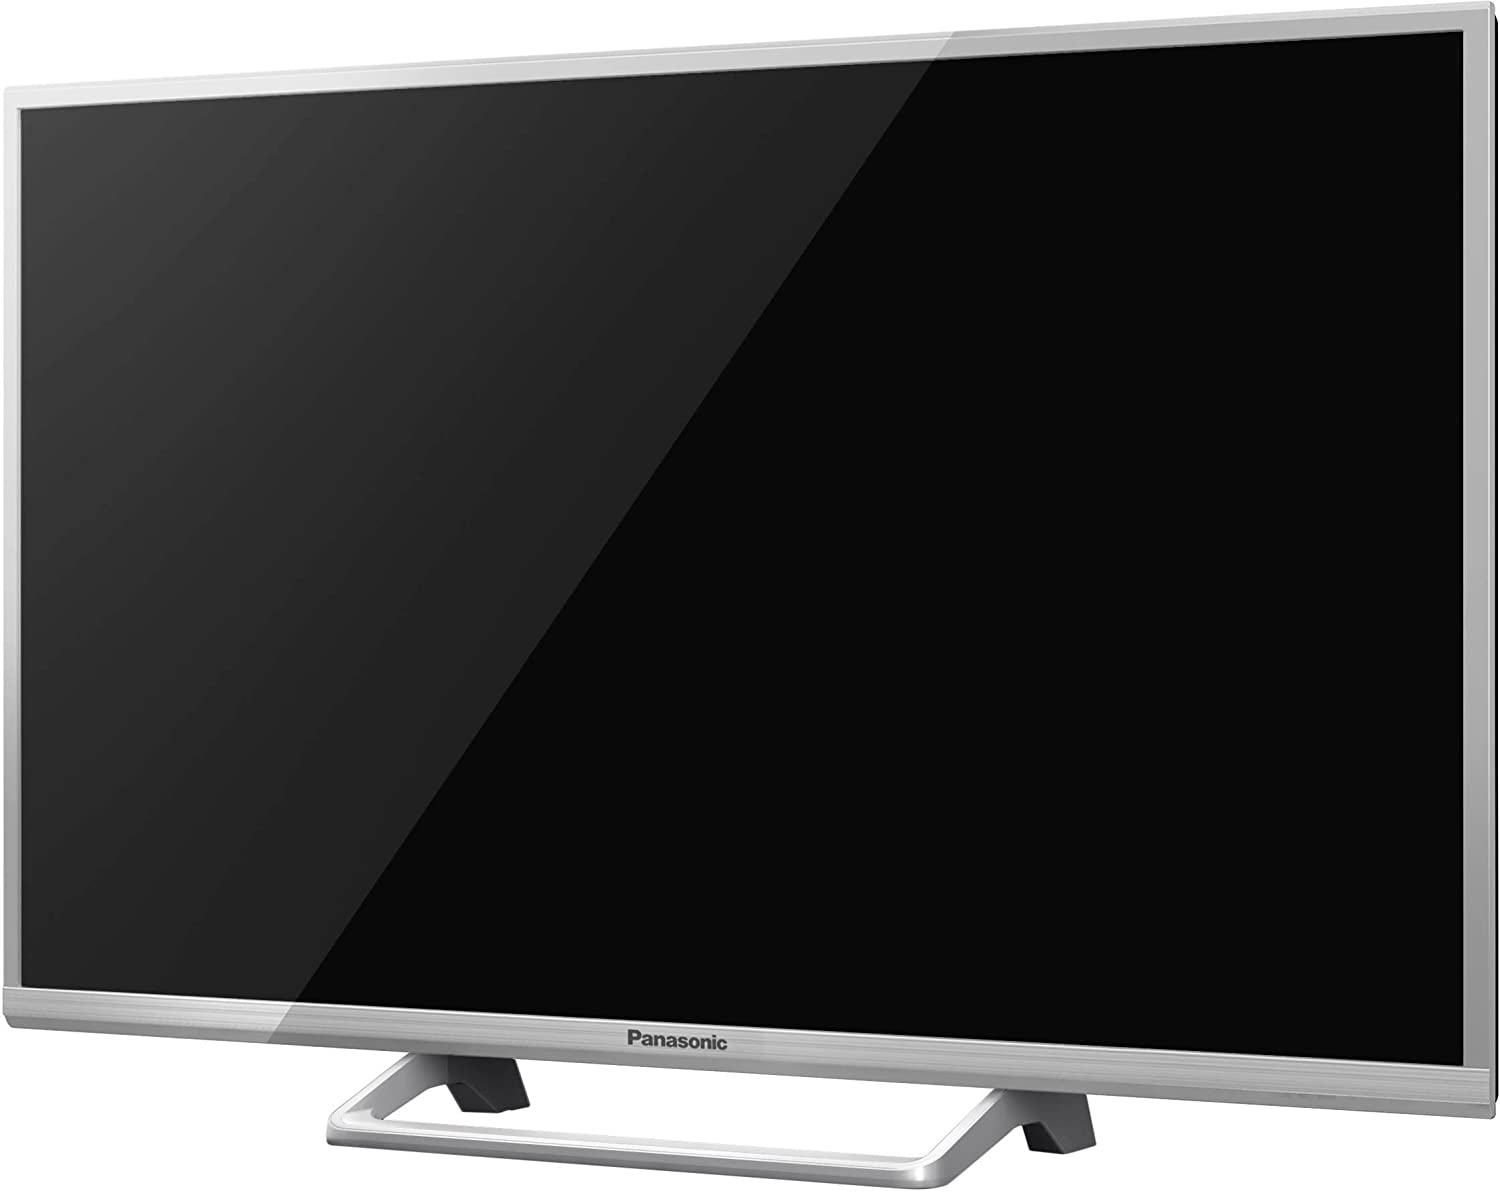 panasonic viera tx 32csw514s 80 cm 32 zoll fernseher hd. Black Bedroom Furniture Sets. Home Design Ideas